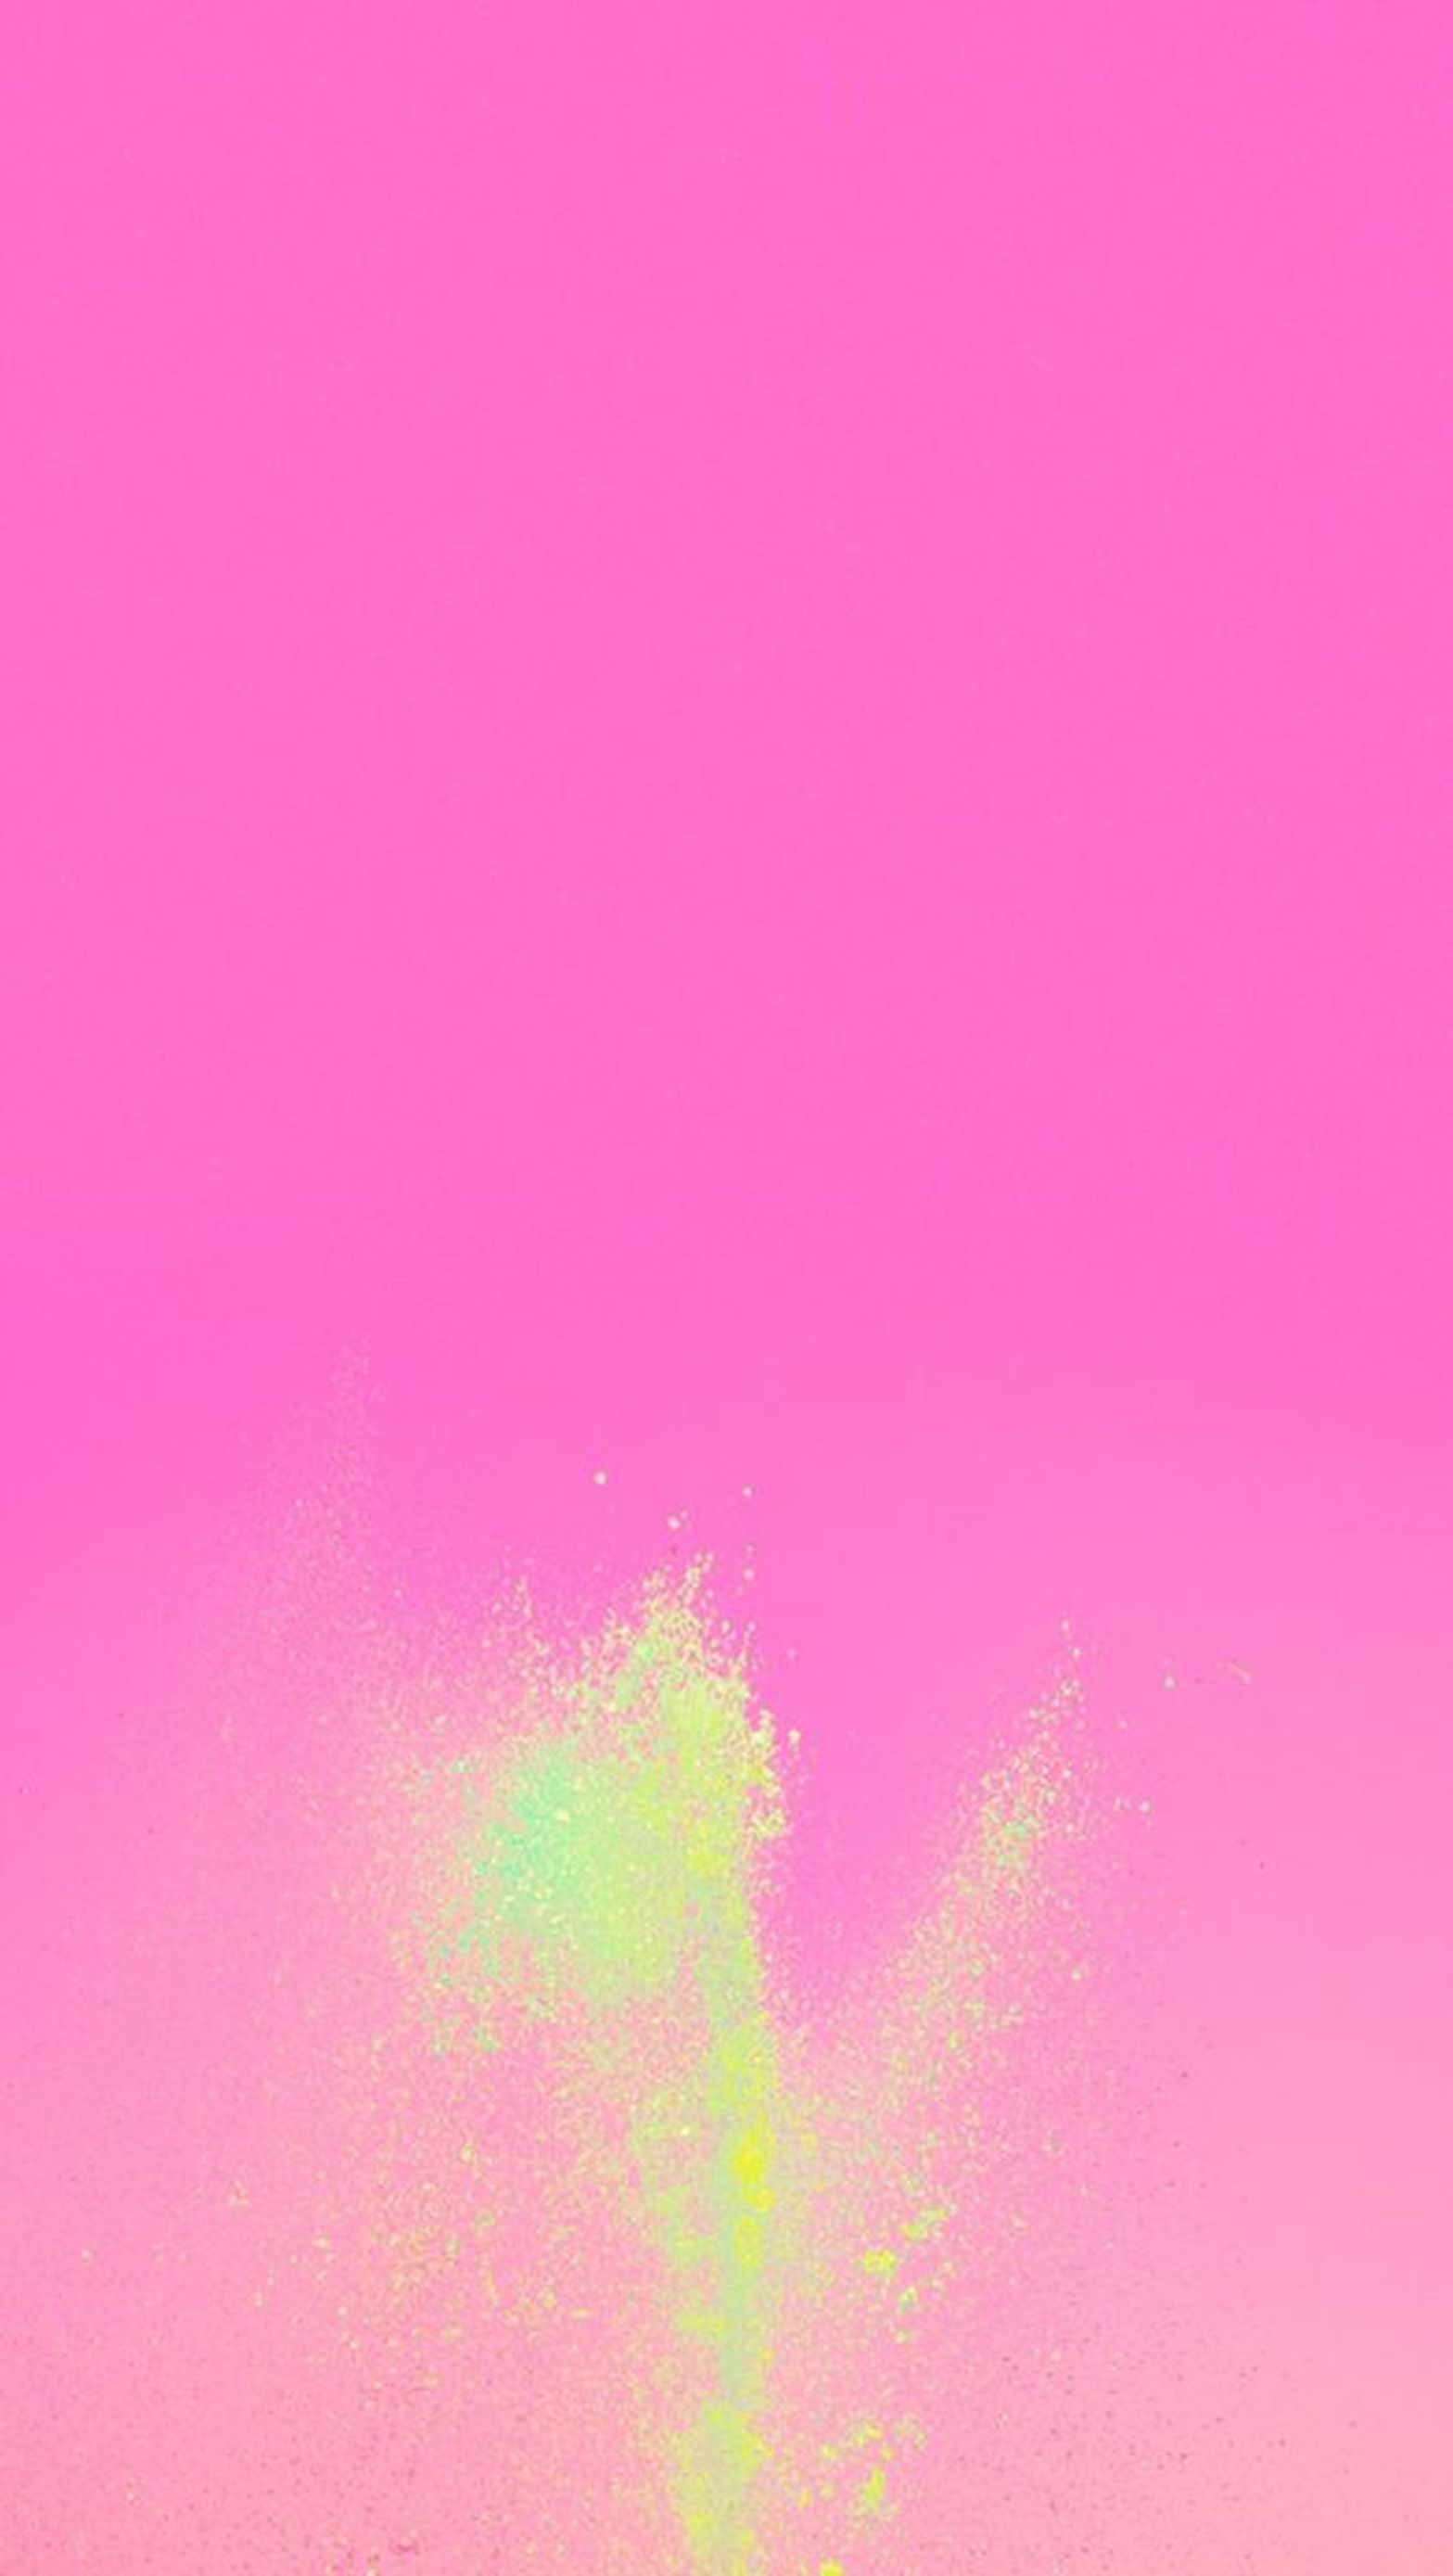 07july2019sunday Don T Say A Word Pink Wallpaper Iphone Iphone Wallpaper Pinterest Iphone Wallpaper